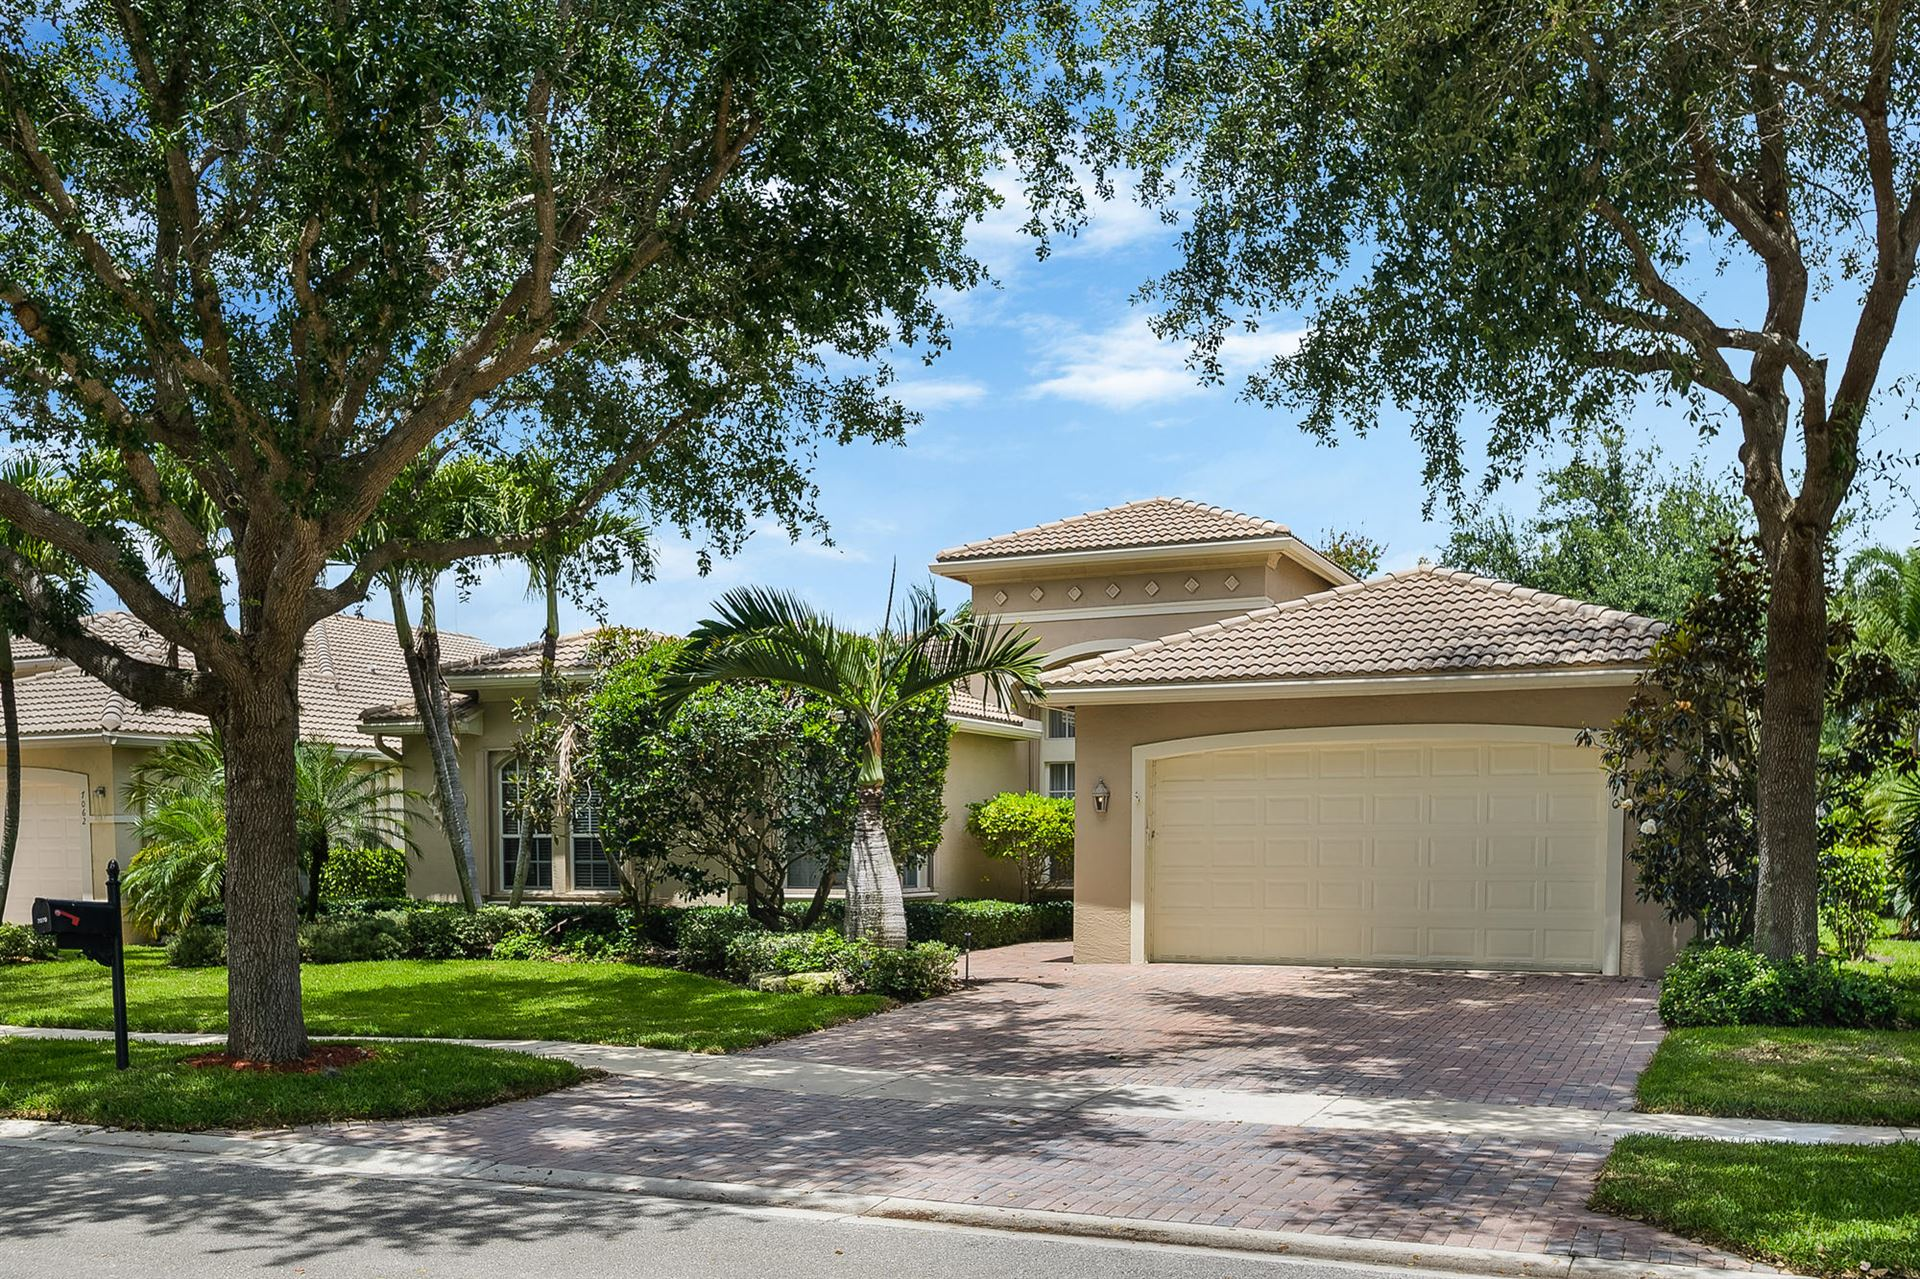 7070 Great Falls Circle, Boynton Beach, FL 33437 - #: RX-10619495